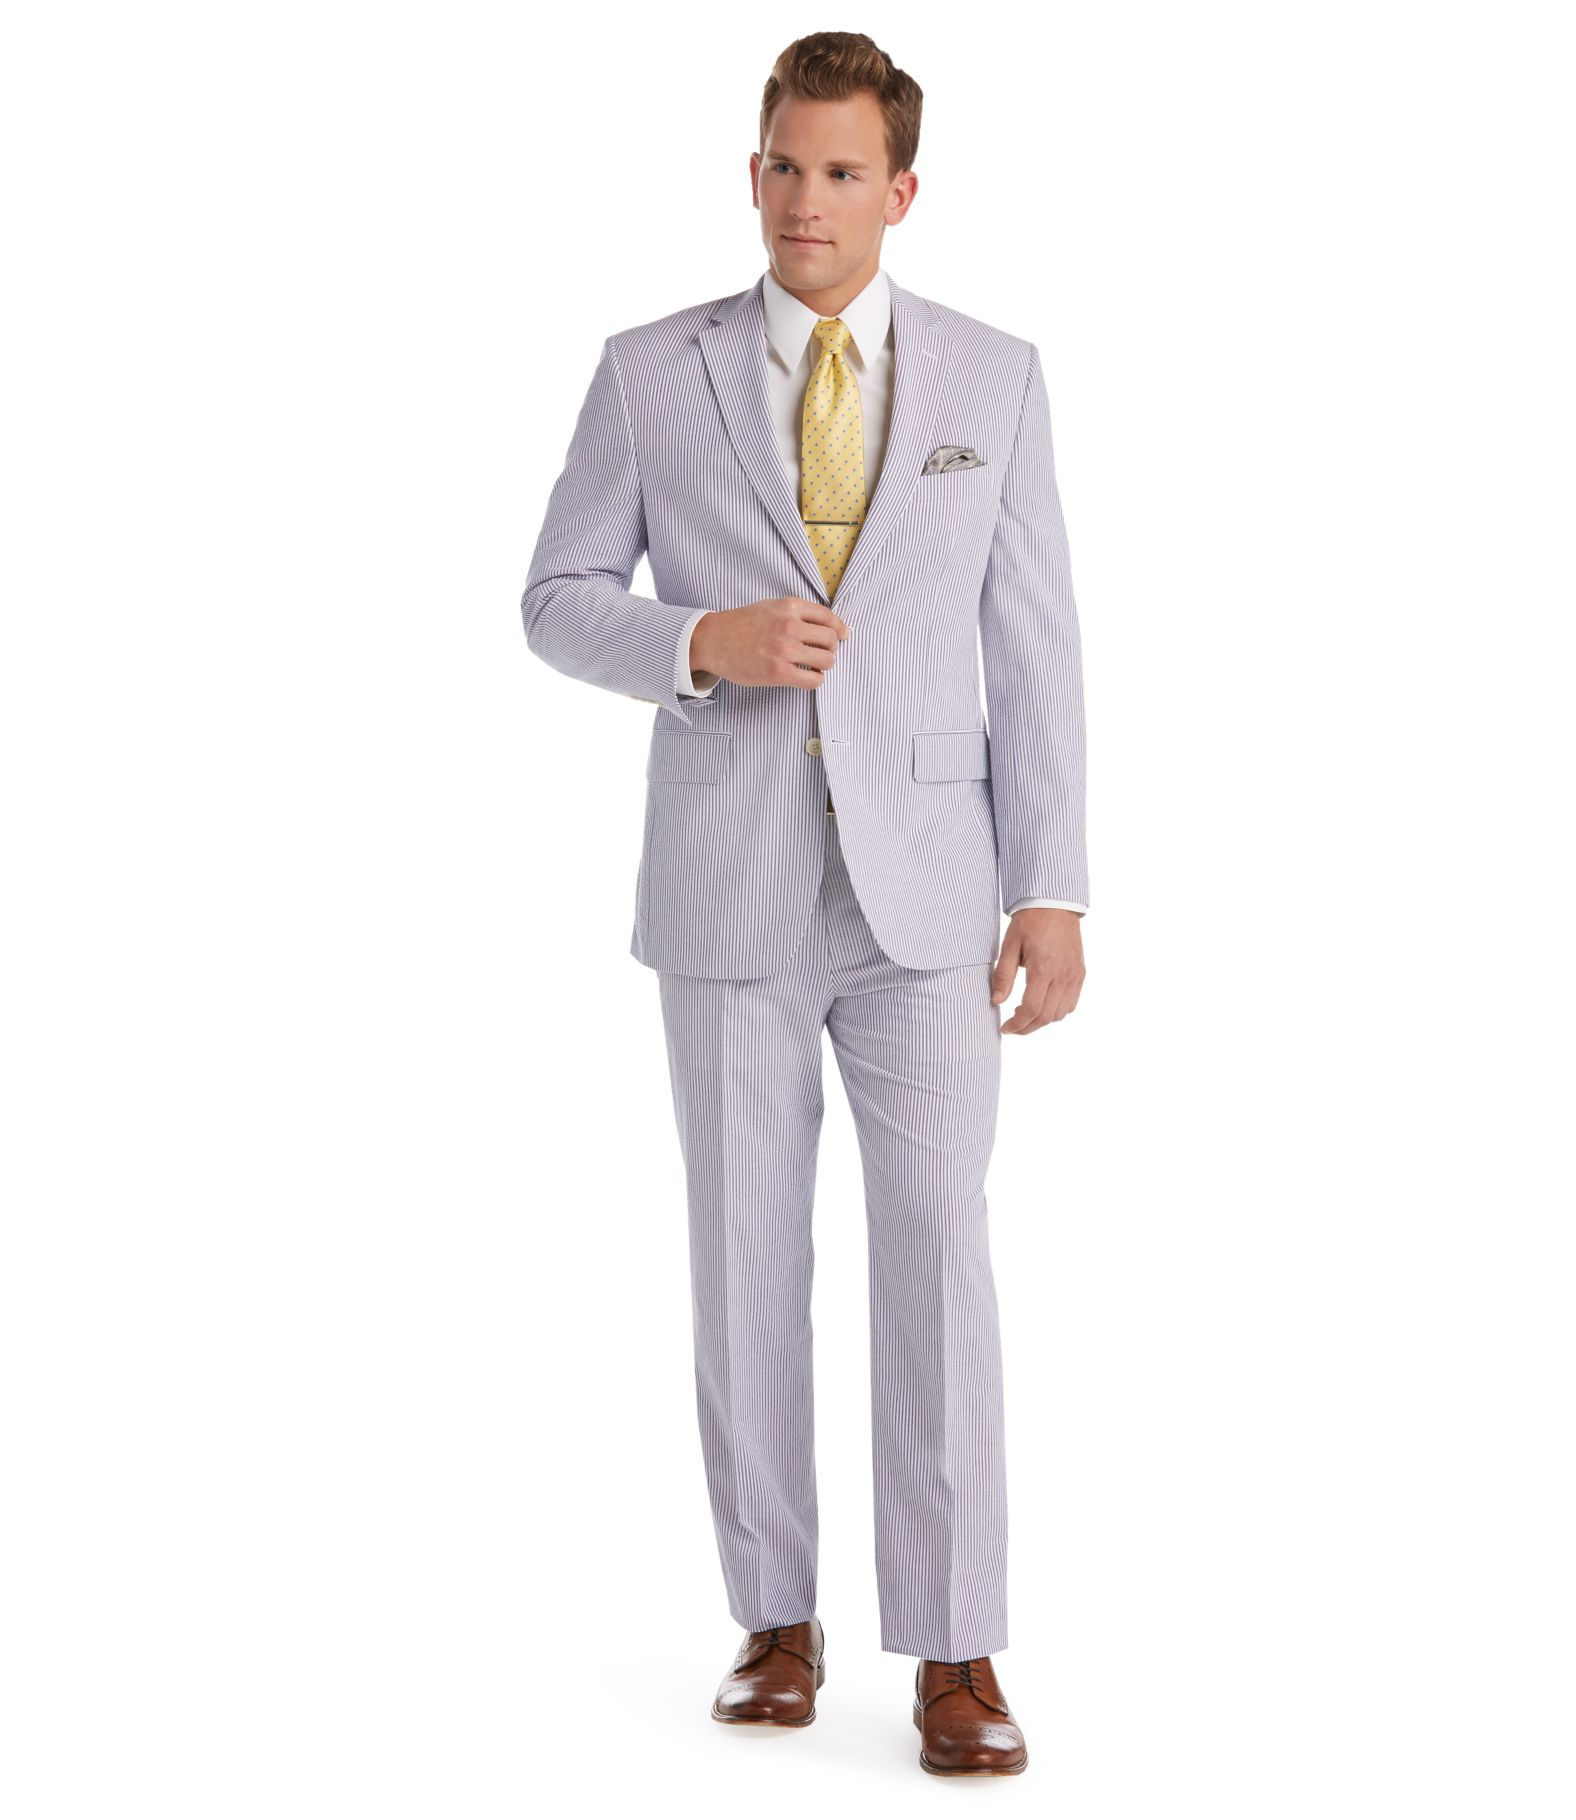 Summer Weight, Lightweight & Linen Suits | Men's | JoS. A. Bank ...